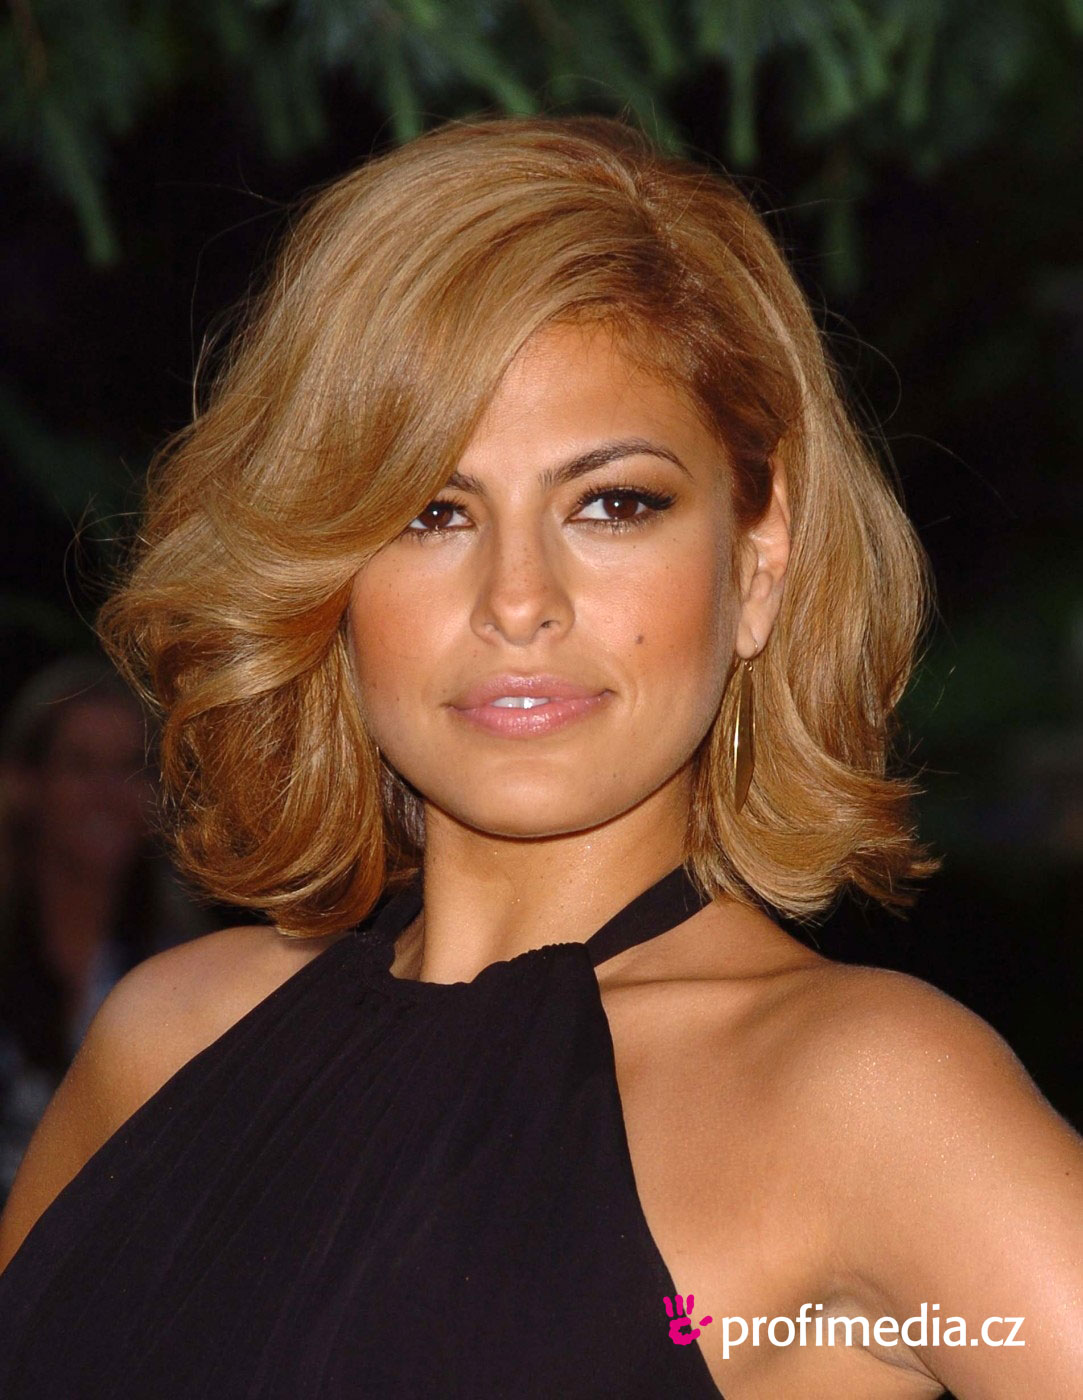 eva mendes frisur zum ausprobieren in efrisuren. Black Bedroom Furniture Sets. Home Design Ideas